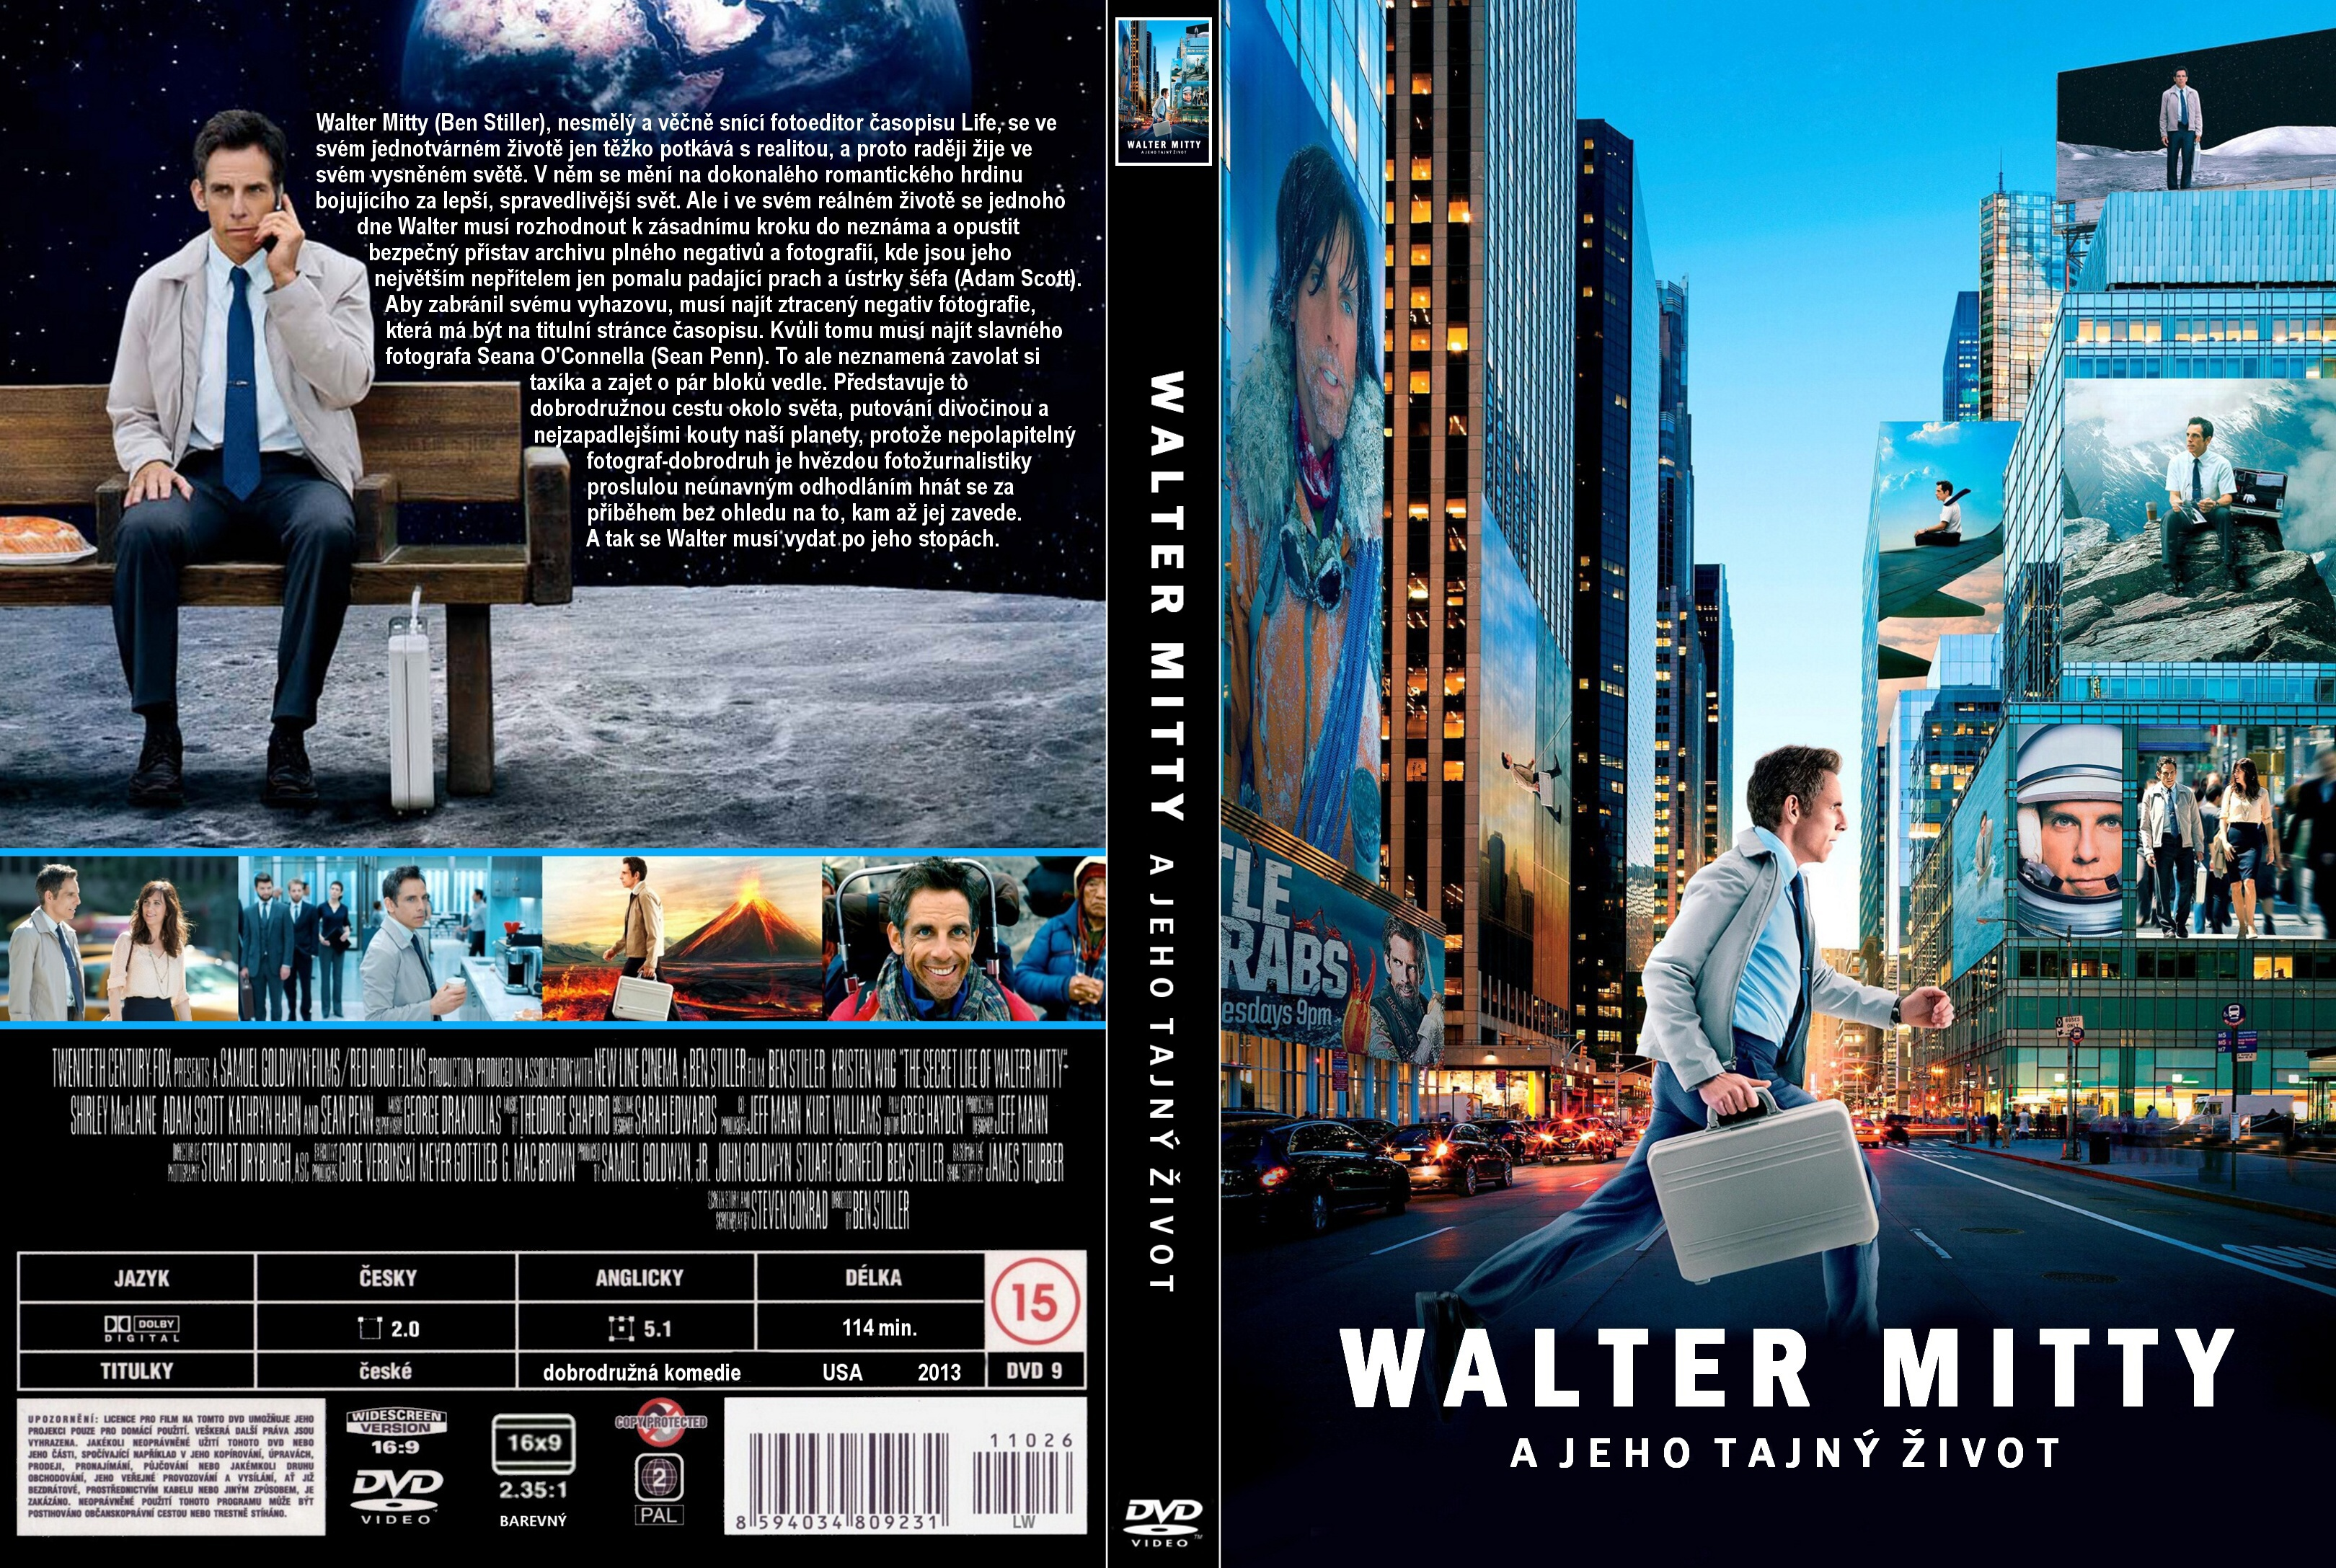 Covers Box Sk The Secret Life Of Walter Mitty 2013 High Quality Dvd Blueray Movie